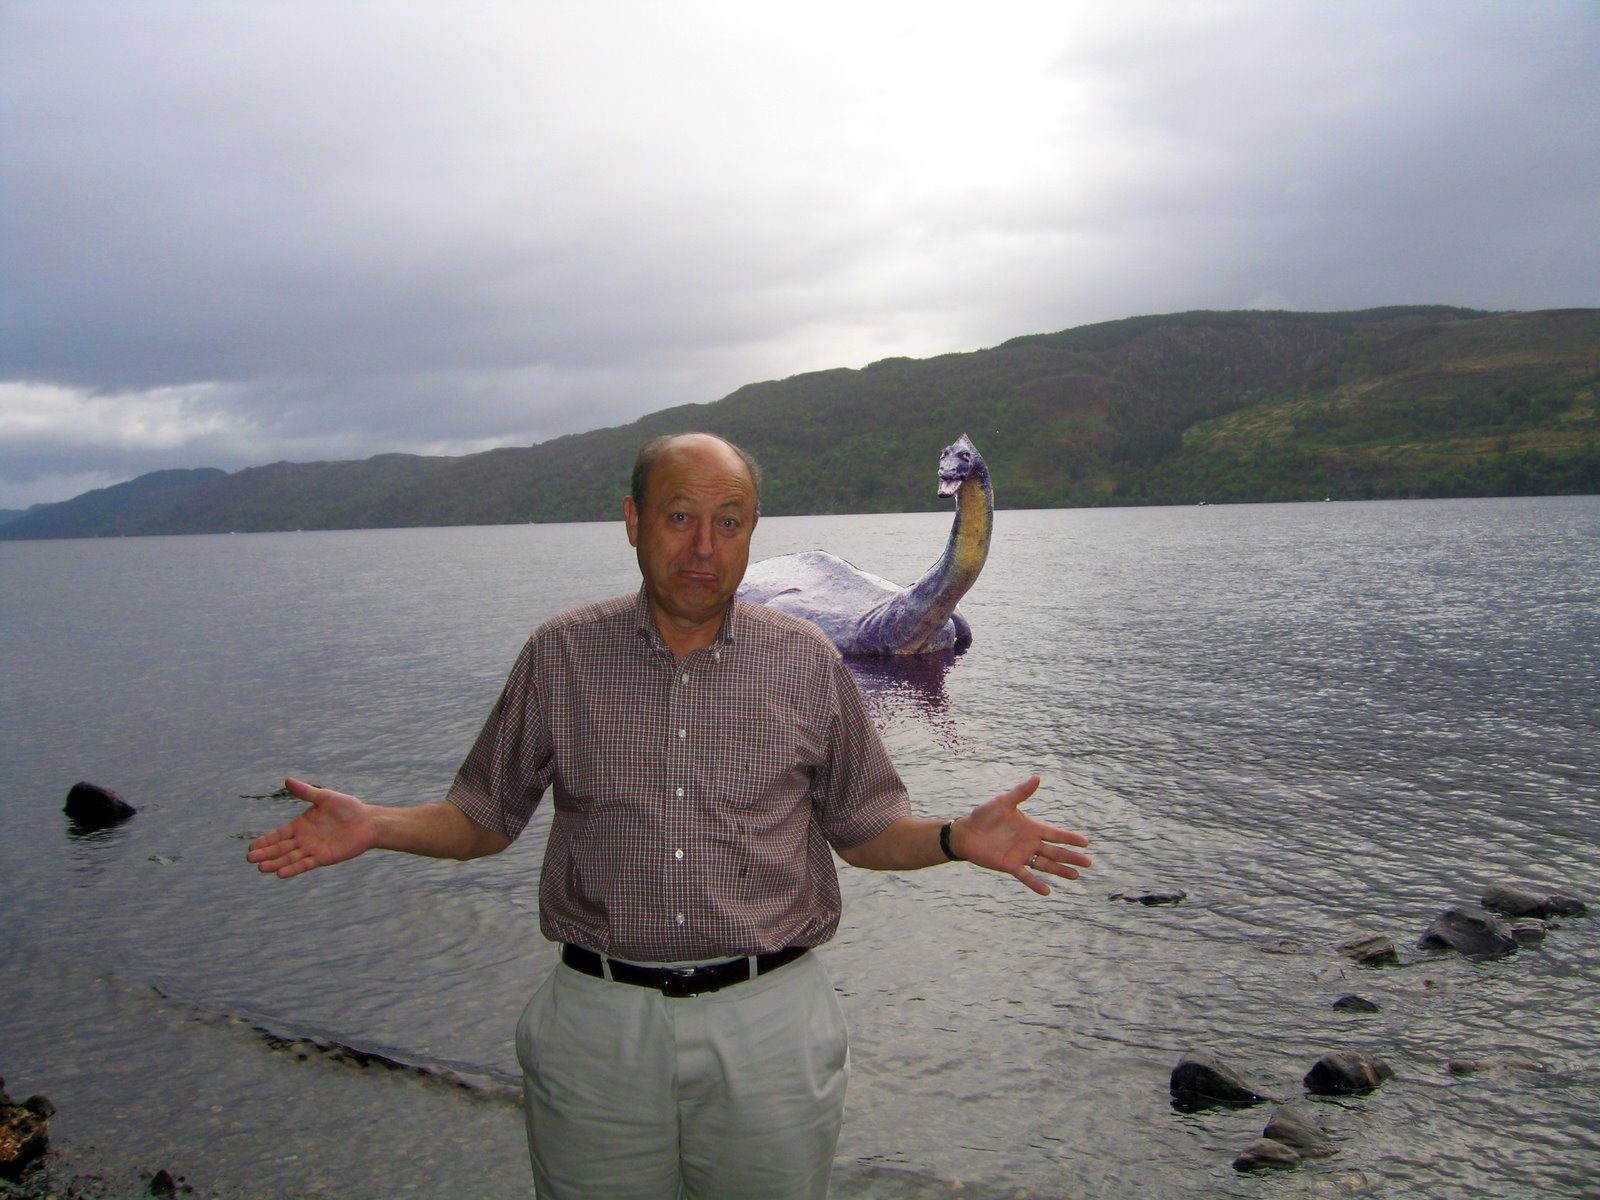 loch ness gay singles Tips for drivers in scotland using single track roads, particularly pertinent to inverness and loch ness where there are many miles of single track roads.